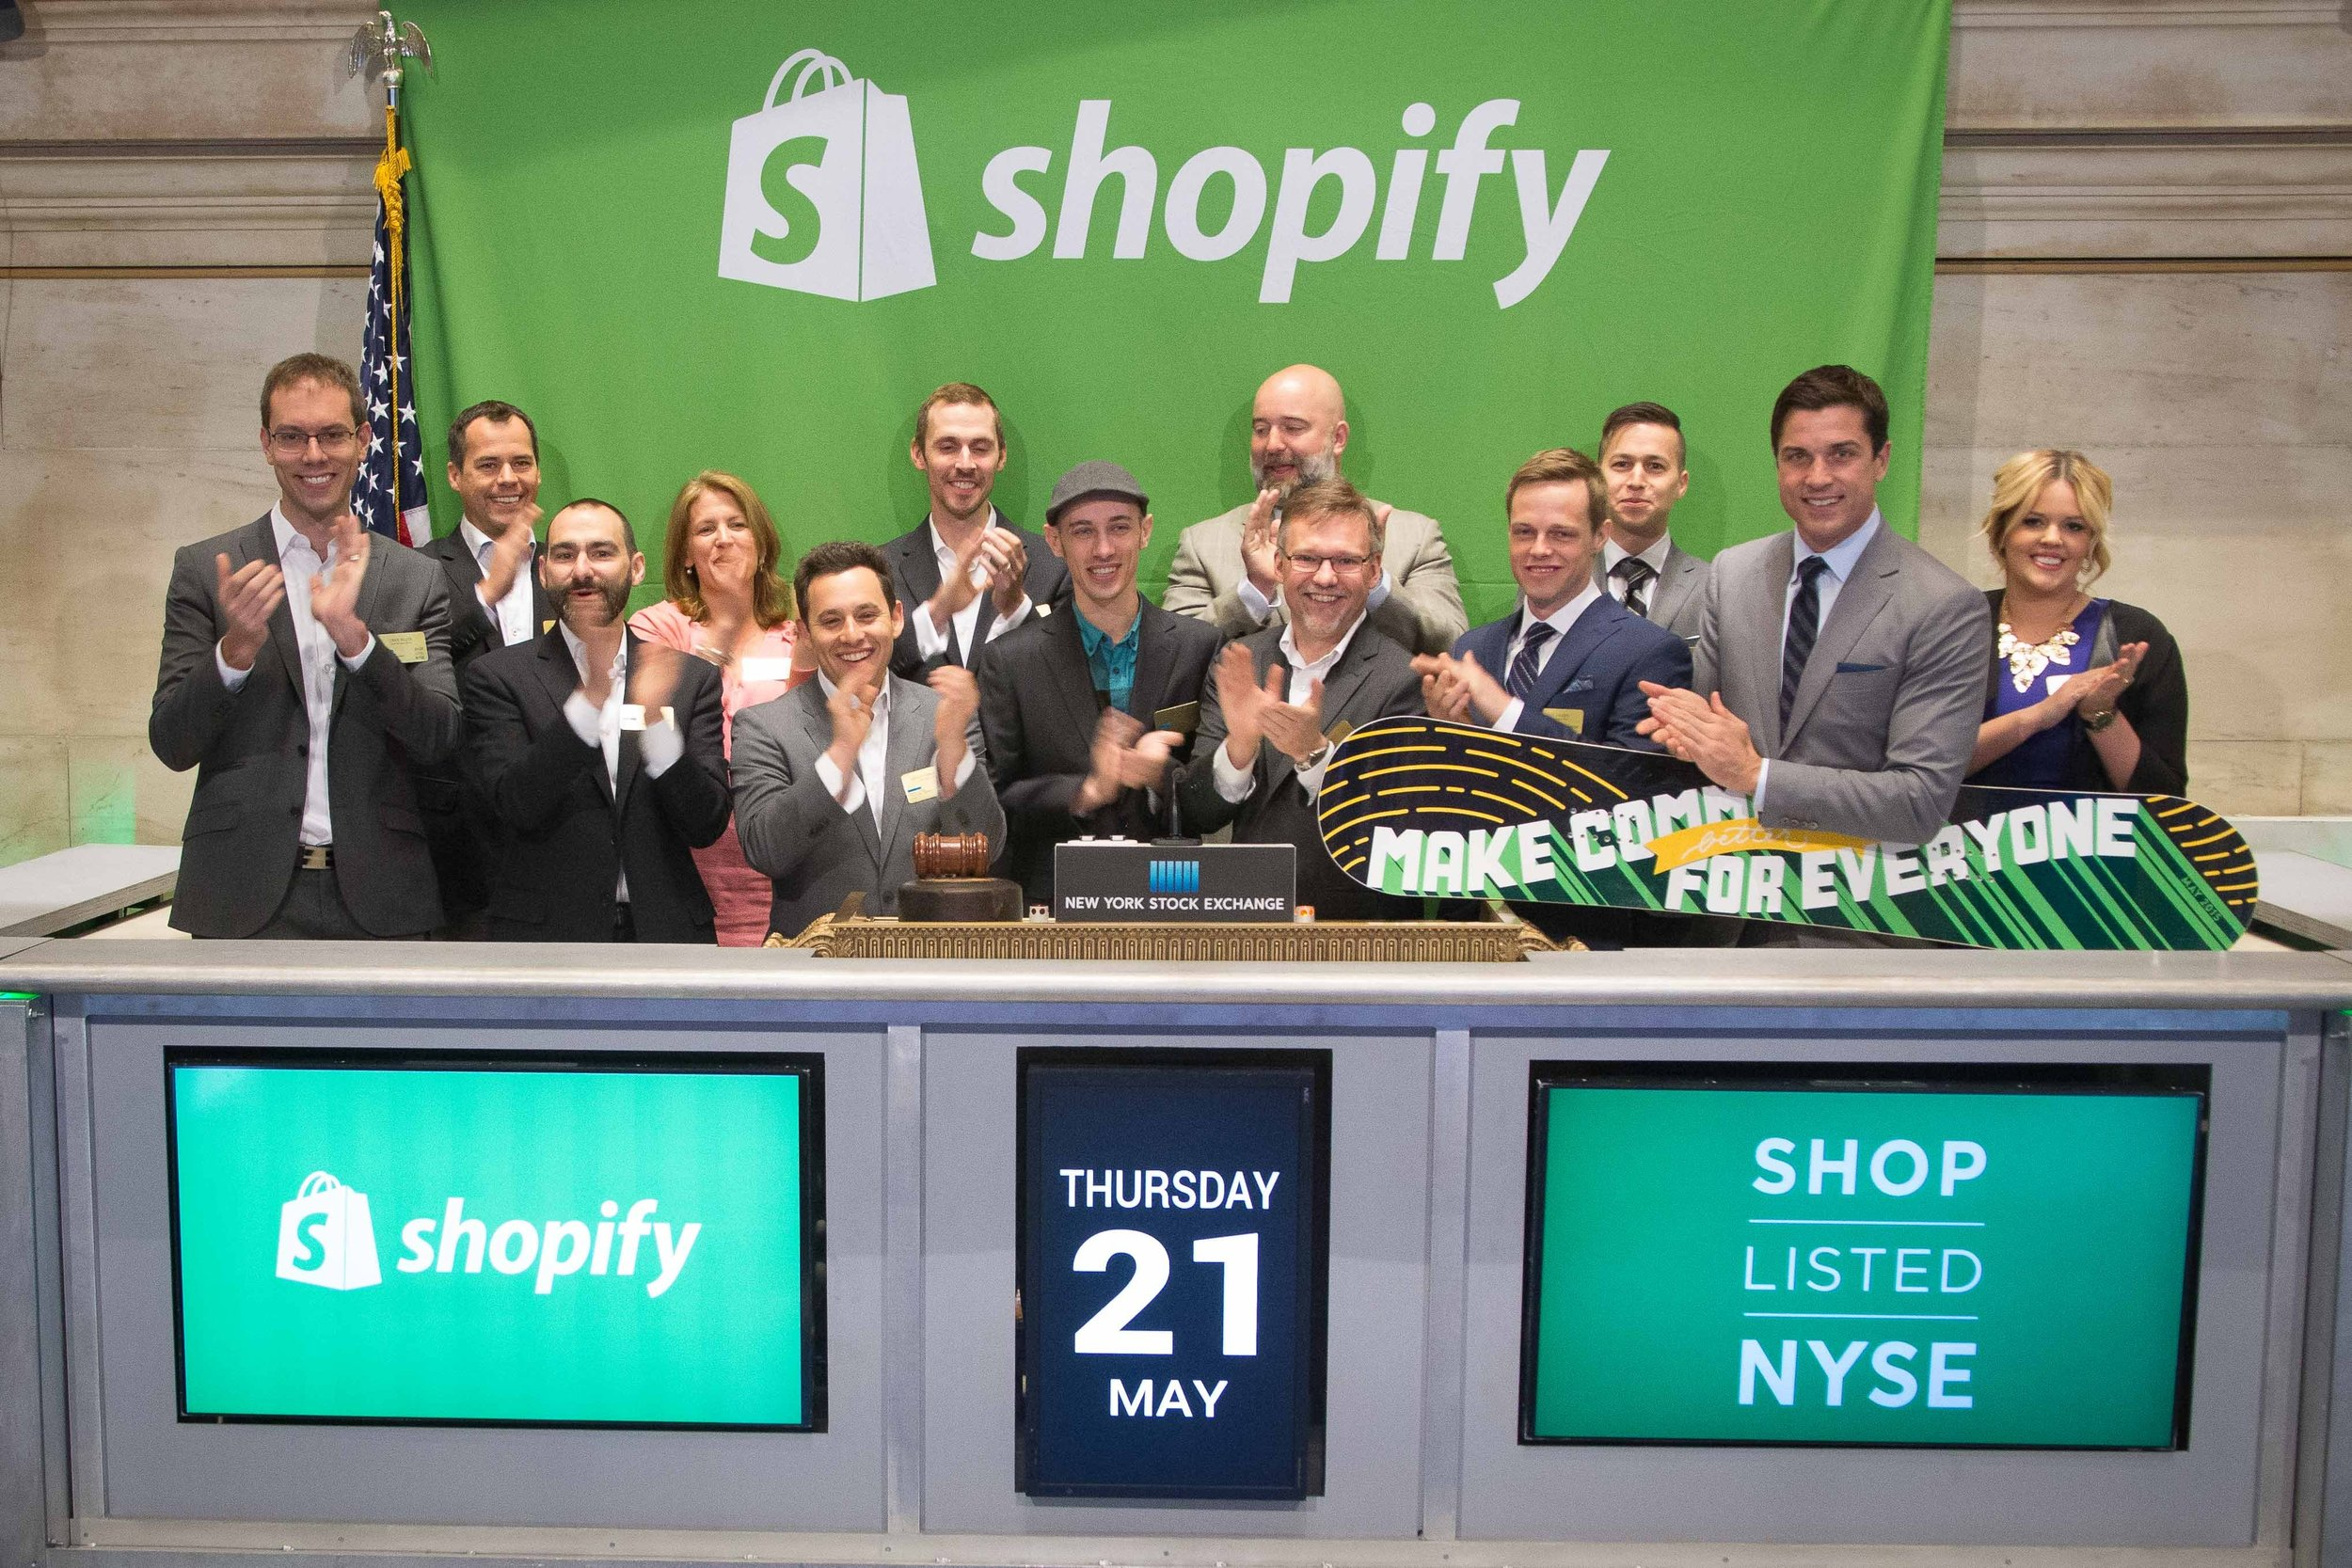 Shopify Inc. CEO and founder Tobi Lutke, along with company executives, rings the NYSE Opening Bell(R) in celebration of Shopify's IPO (Photo: Business Wire)